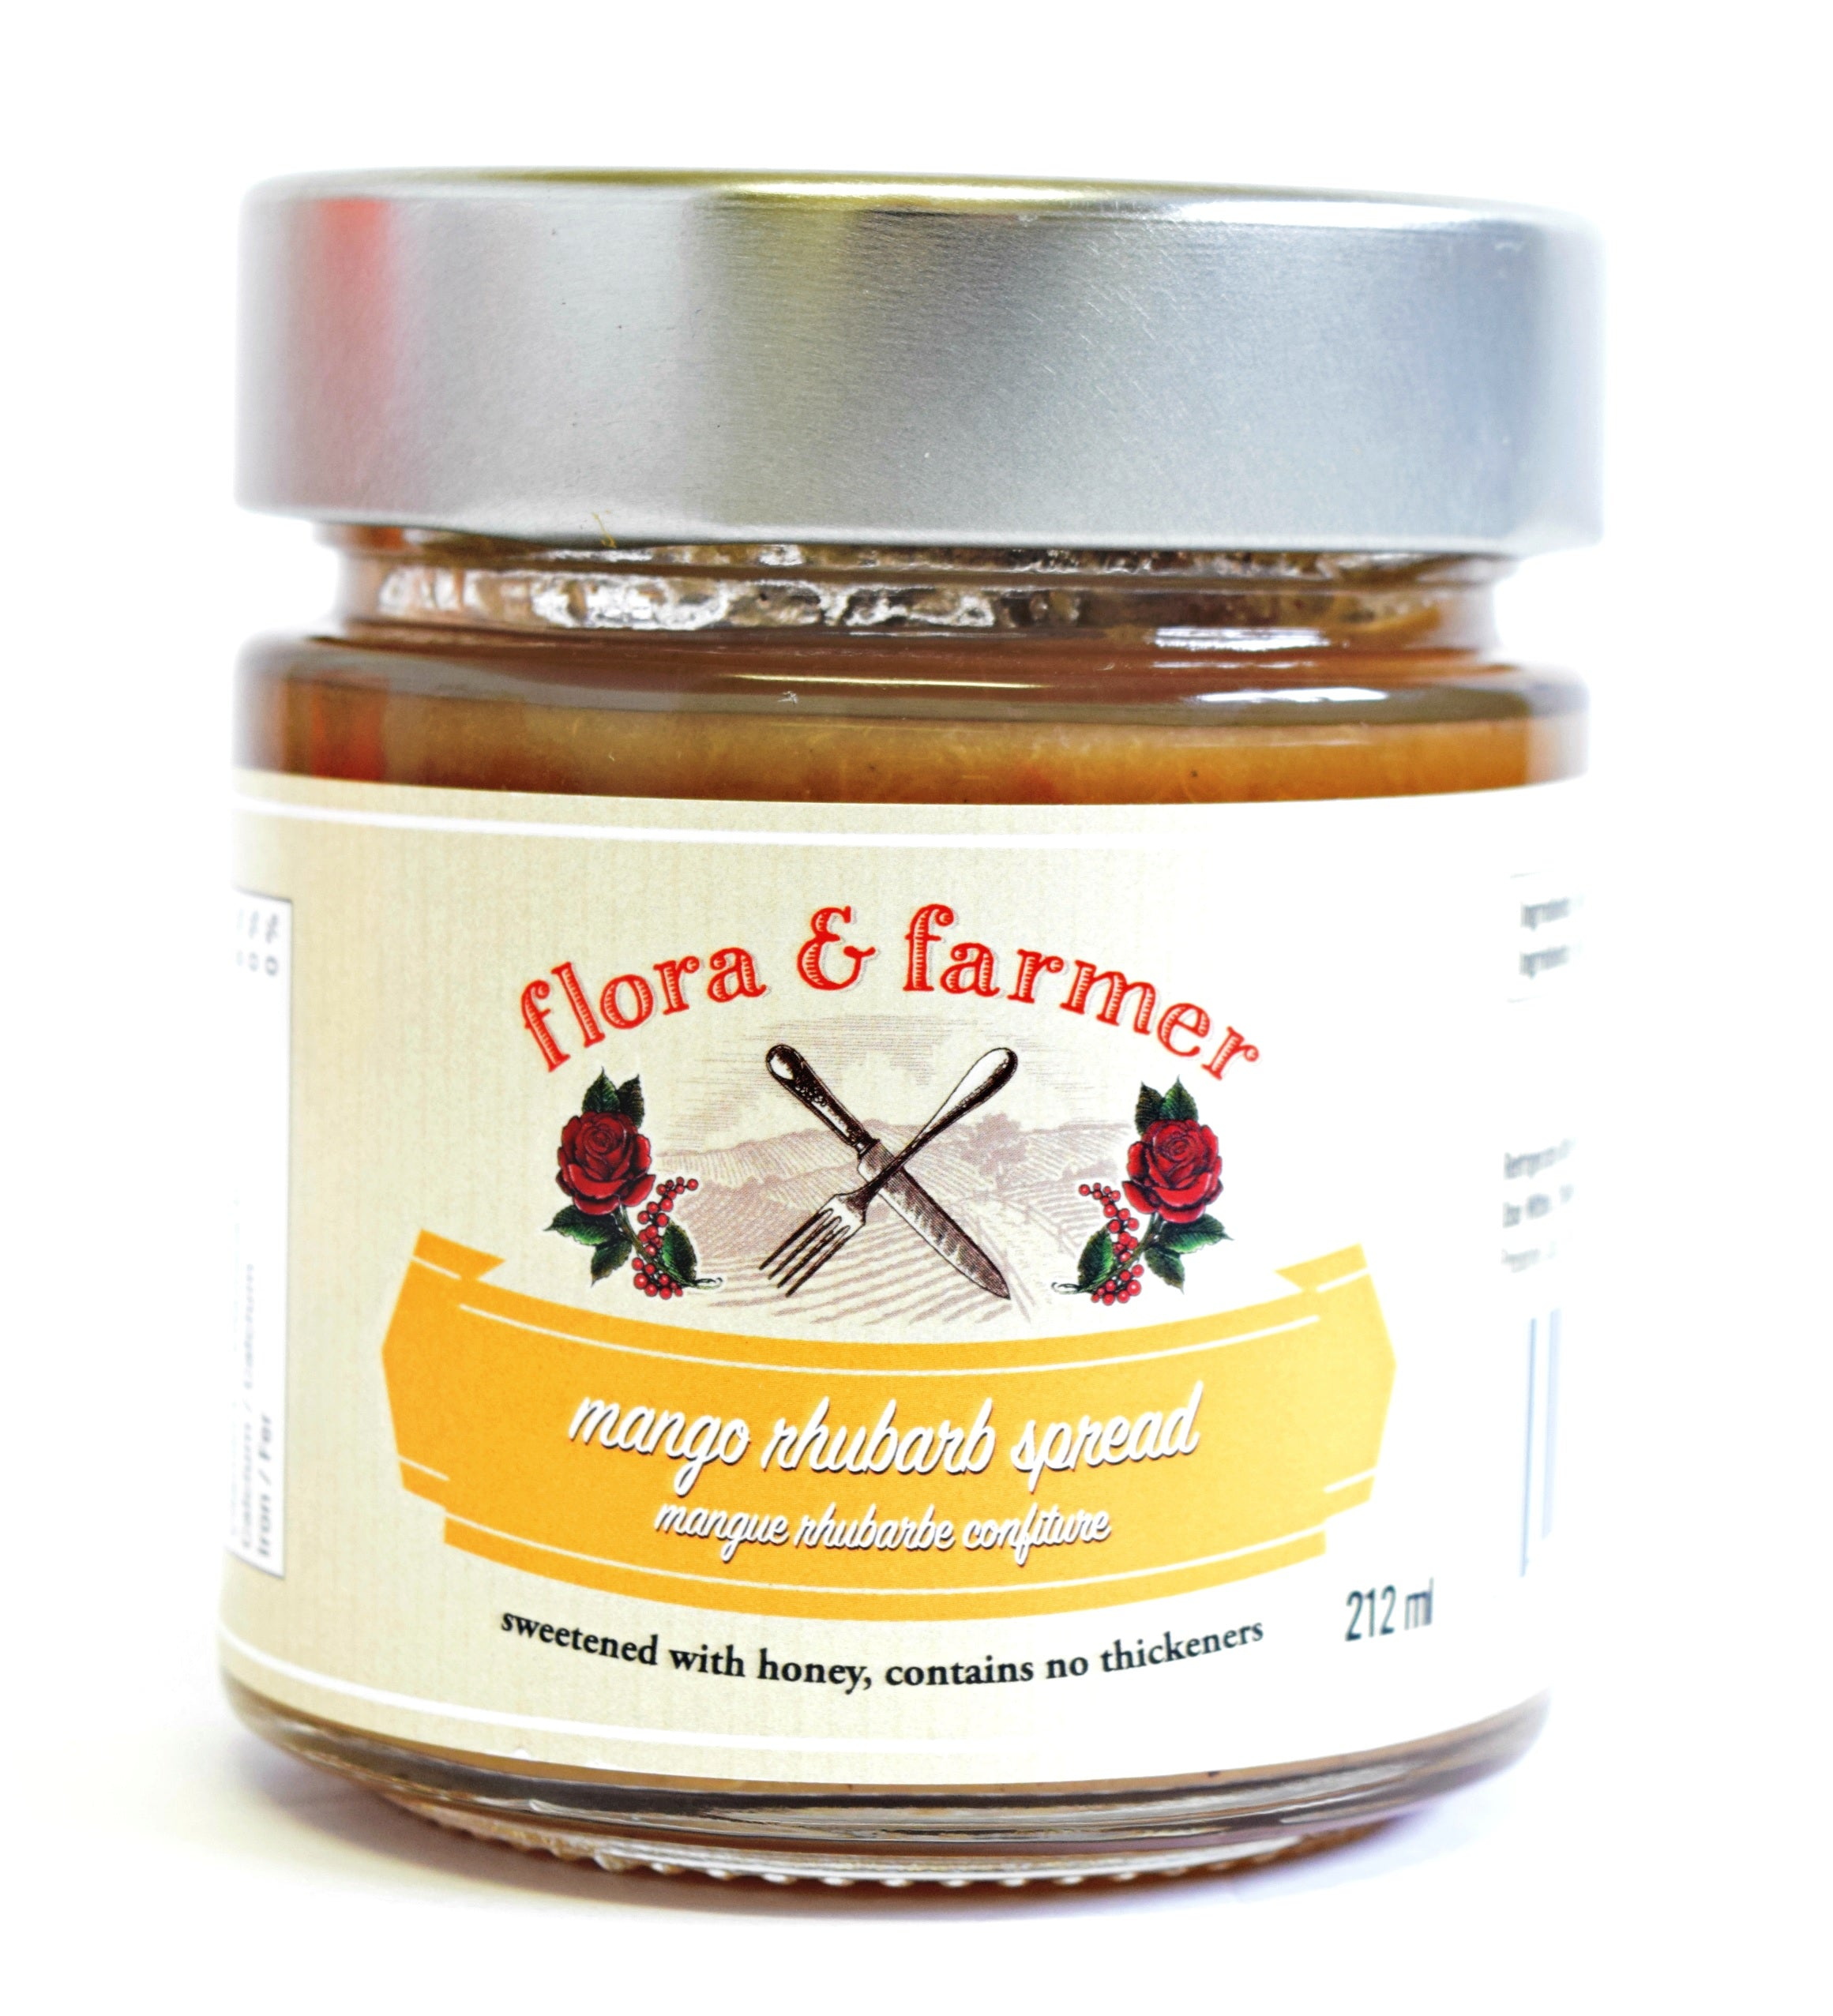 Mango Rhubarb Spread 212g by Flora & Farmer